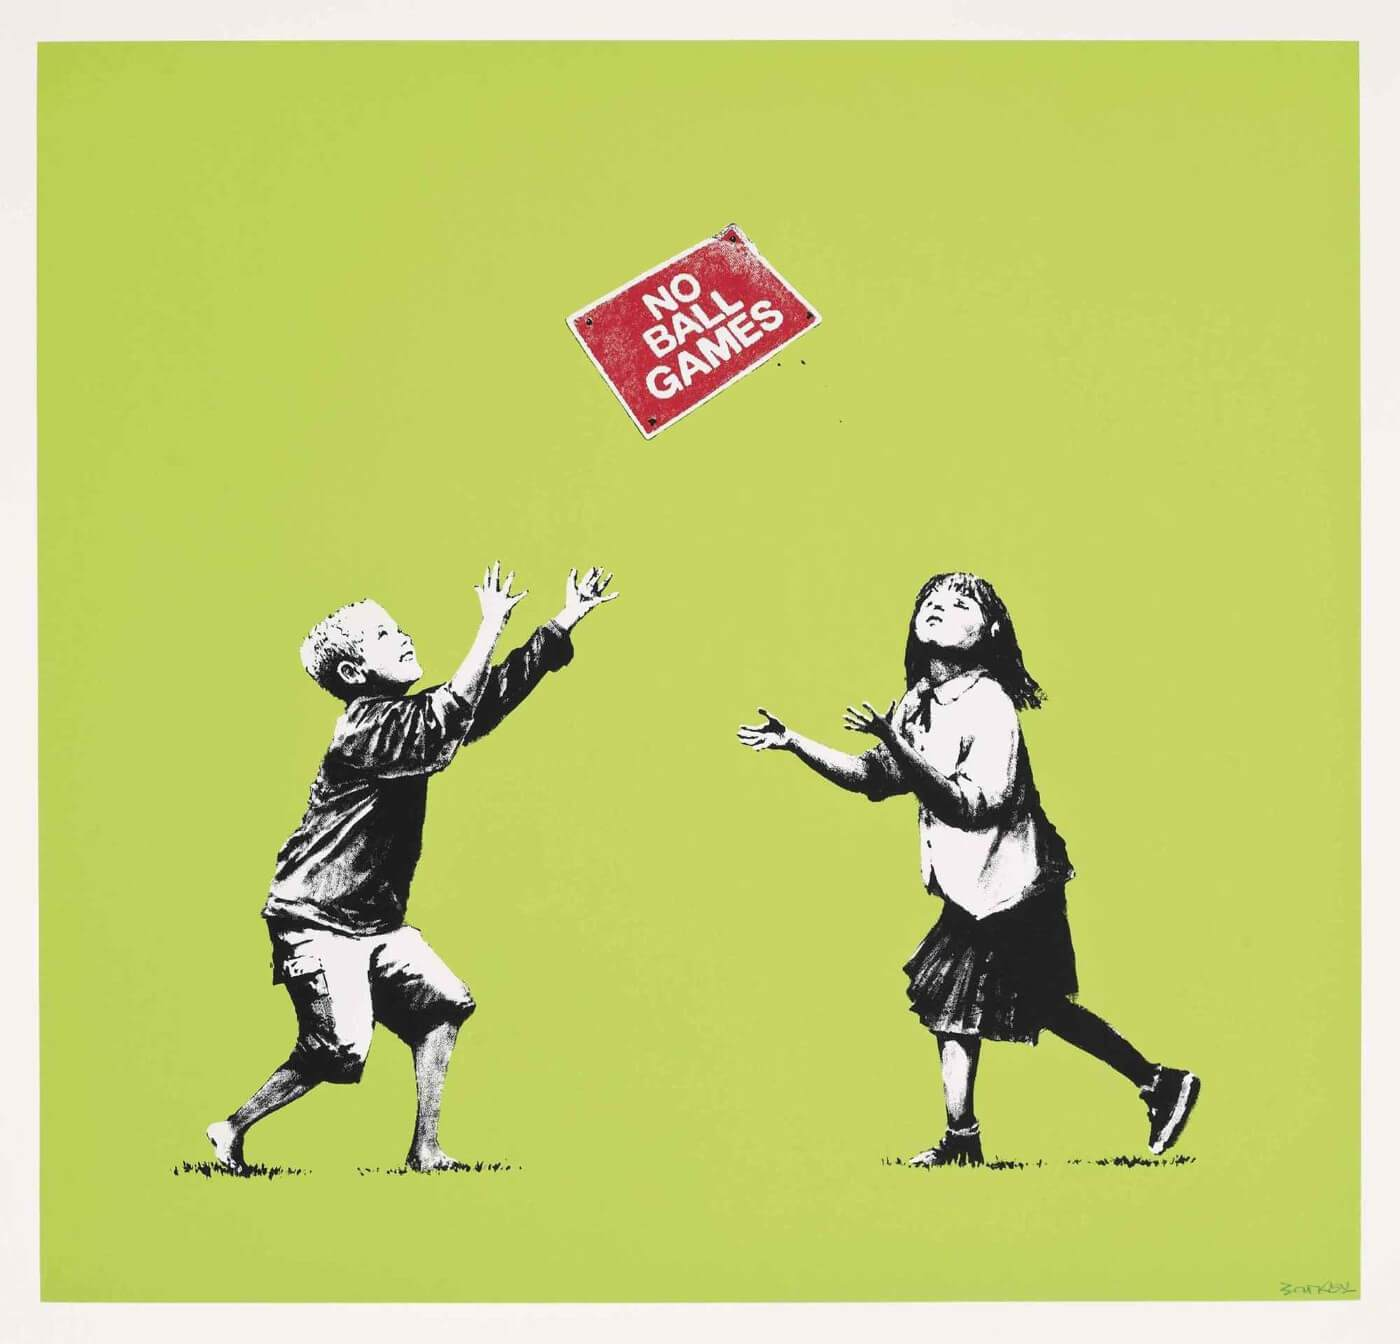 No Ball Games - Banksy - Canvas Prints by Banksy | Buy Posters ...